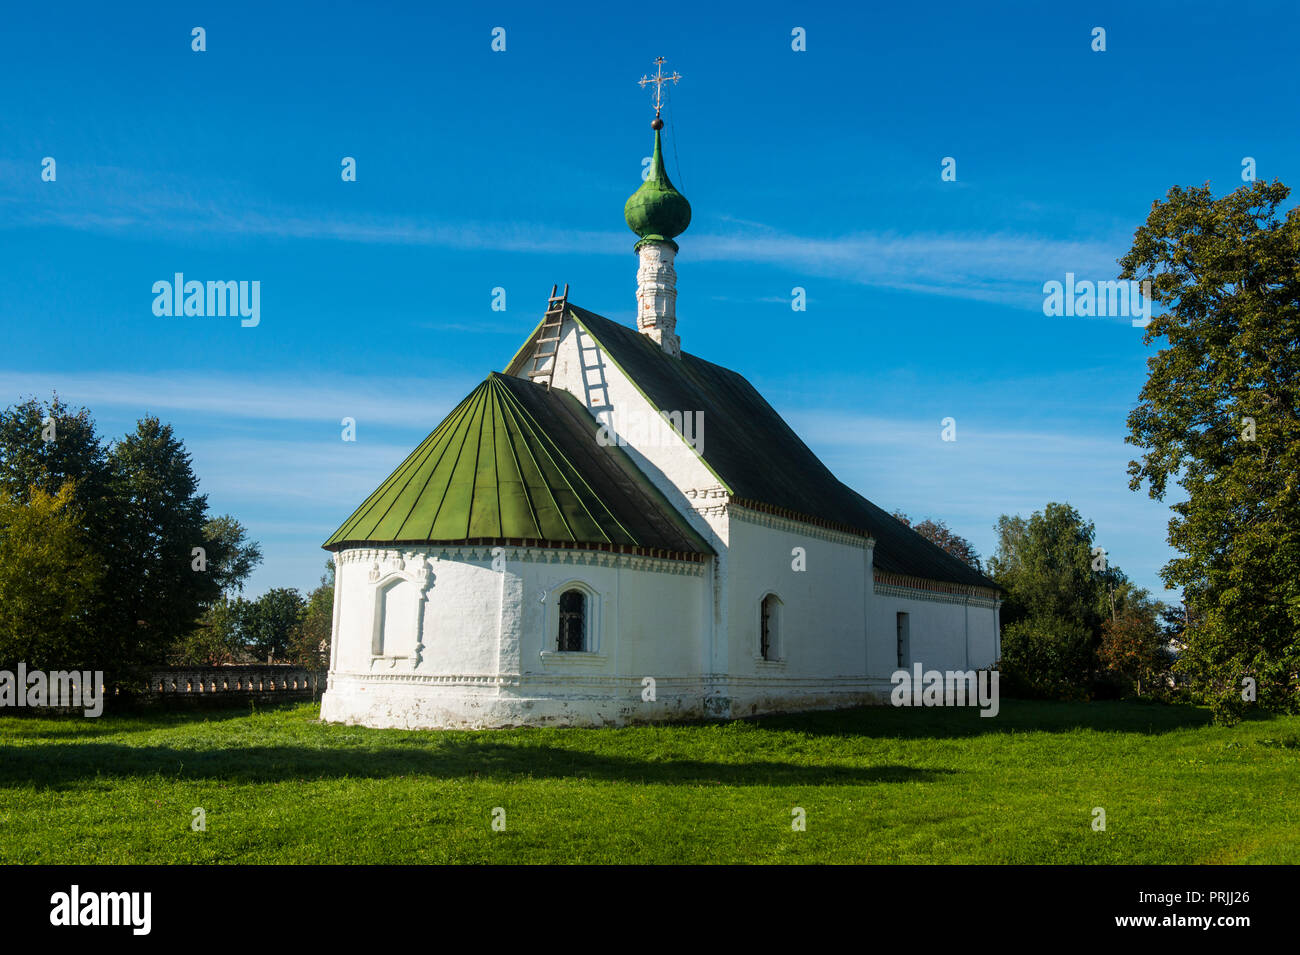 Church of Boris and Gleb, Kidesha, Russia - Stock Image